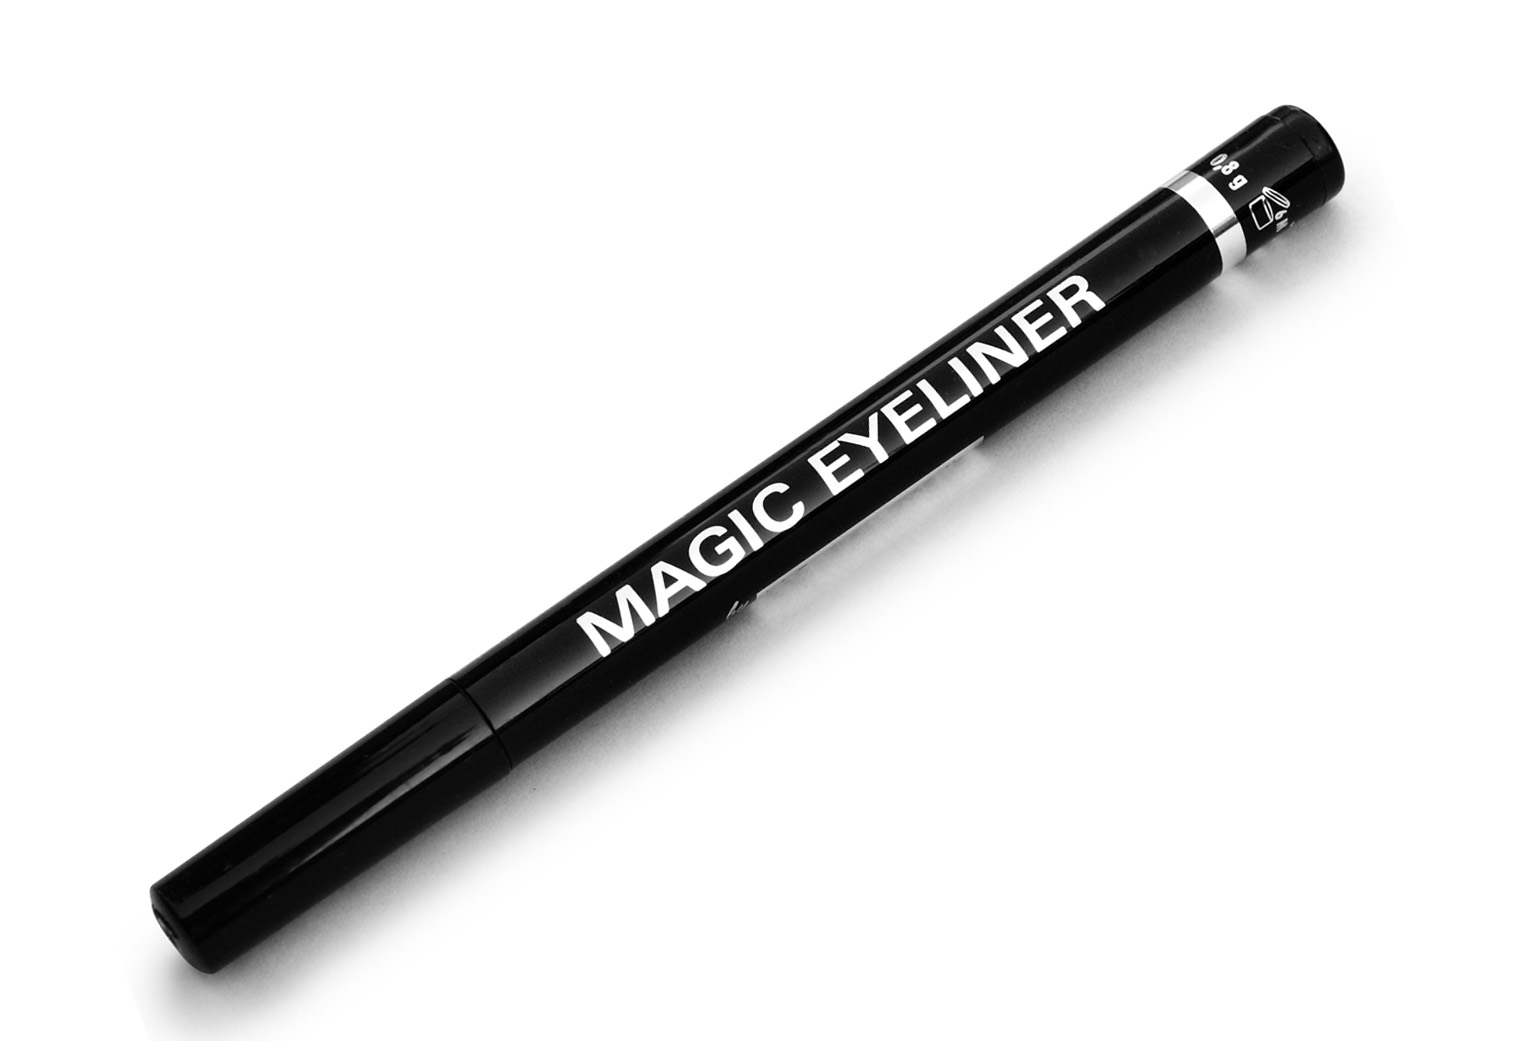 MAGIC EYELINER - Tekutá oční linka